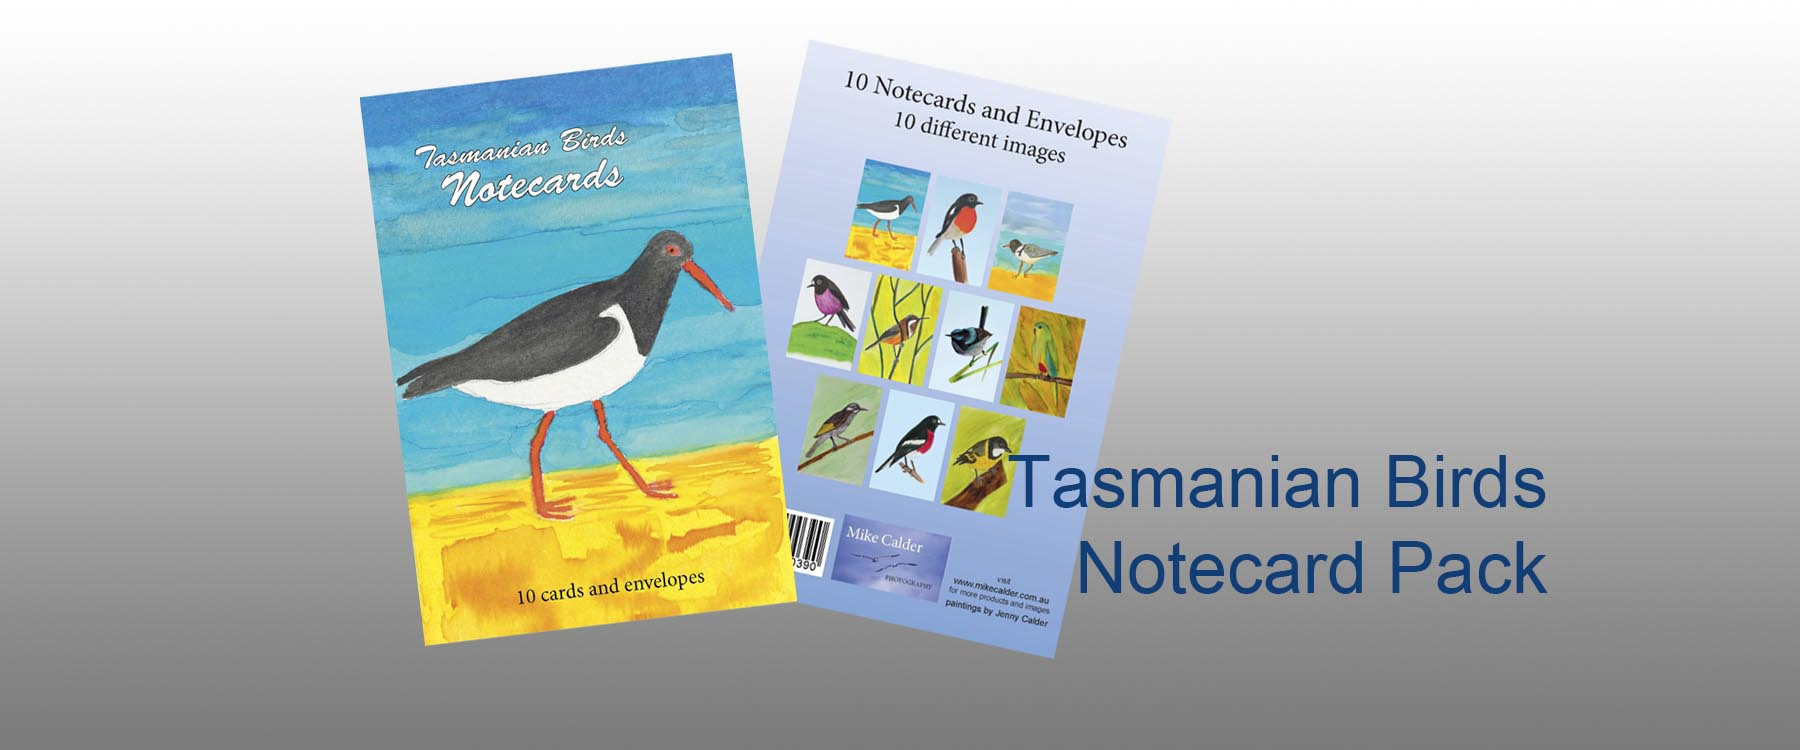 Tasmanian Birds Notecard Pack for home page